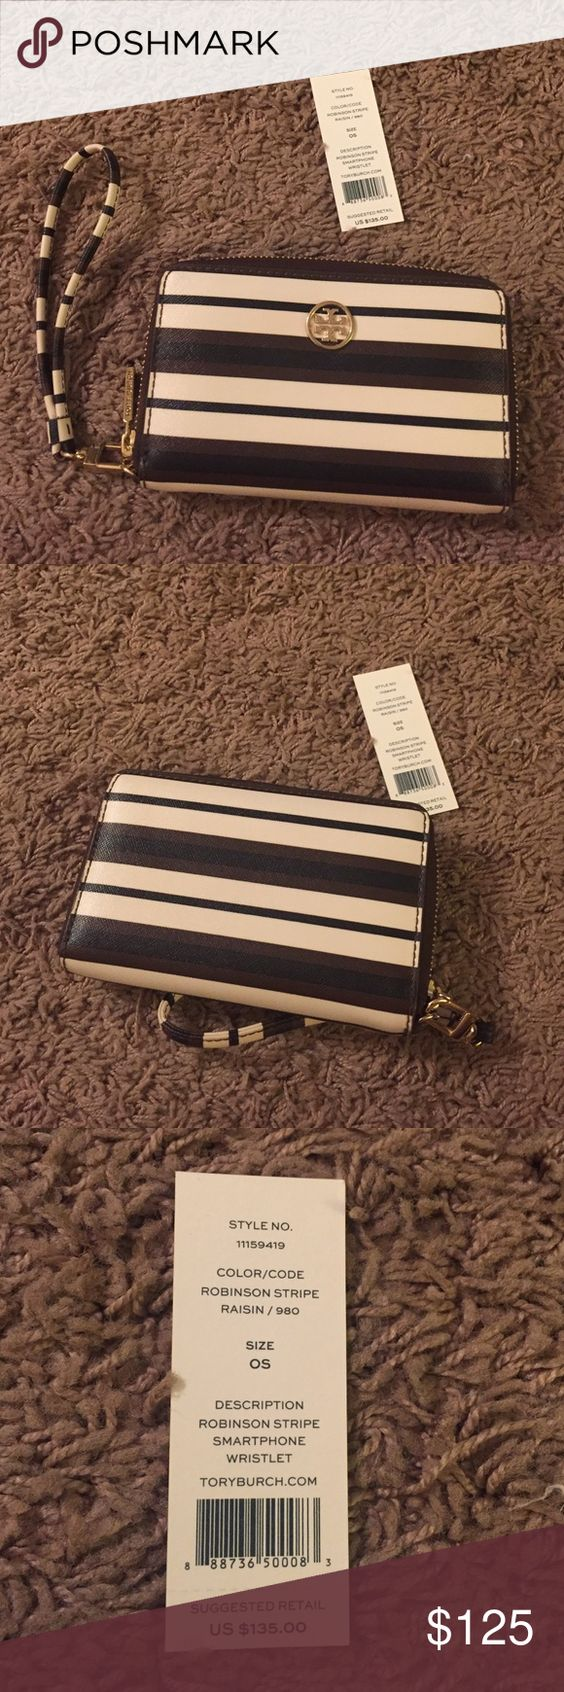 Tory Burch Robinson Wristlet Tory Burch Robinson Wristlet, fits iPhone, lots of card space, small enough to bring into NFL games, new, I love this! Brown, white, navy(or black.. Hard to tell) striped. Brown interior lining. Tory Burch Bags Clutches & Wristlets